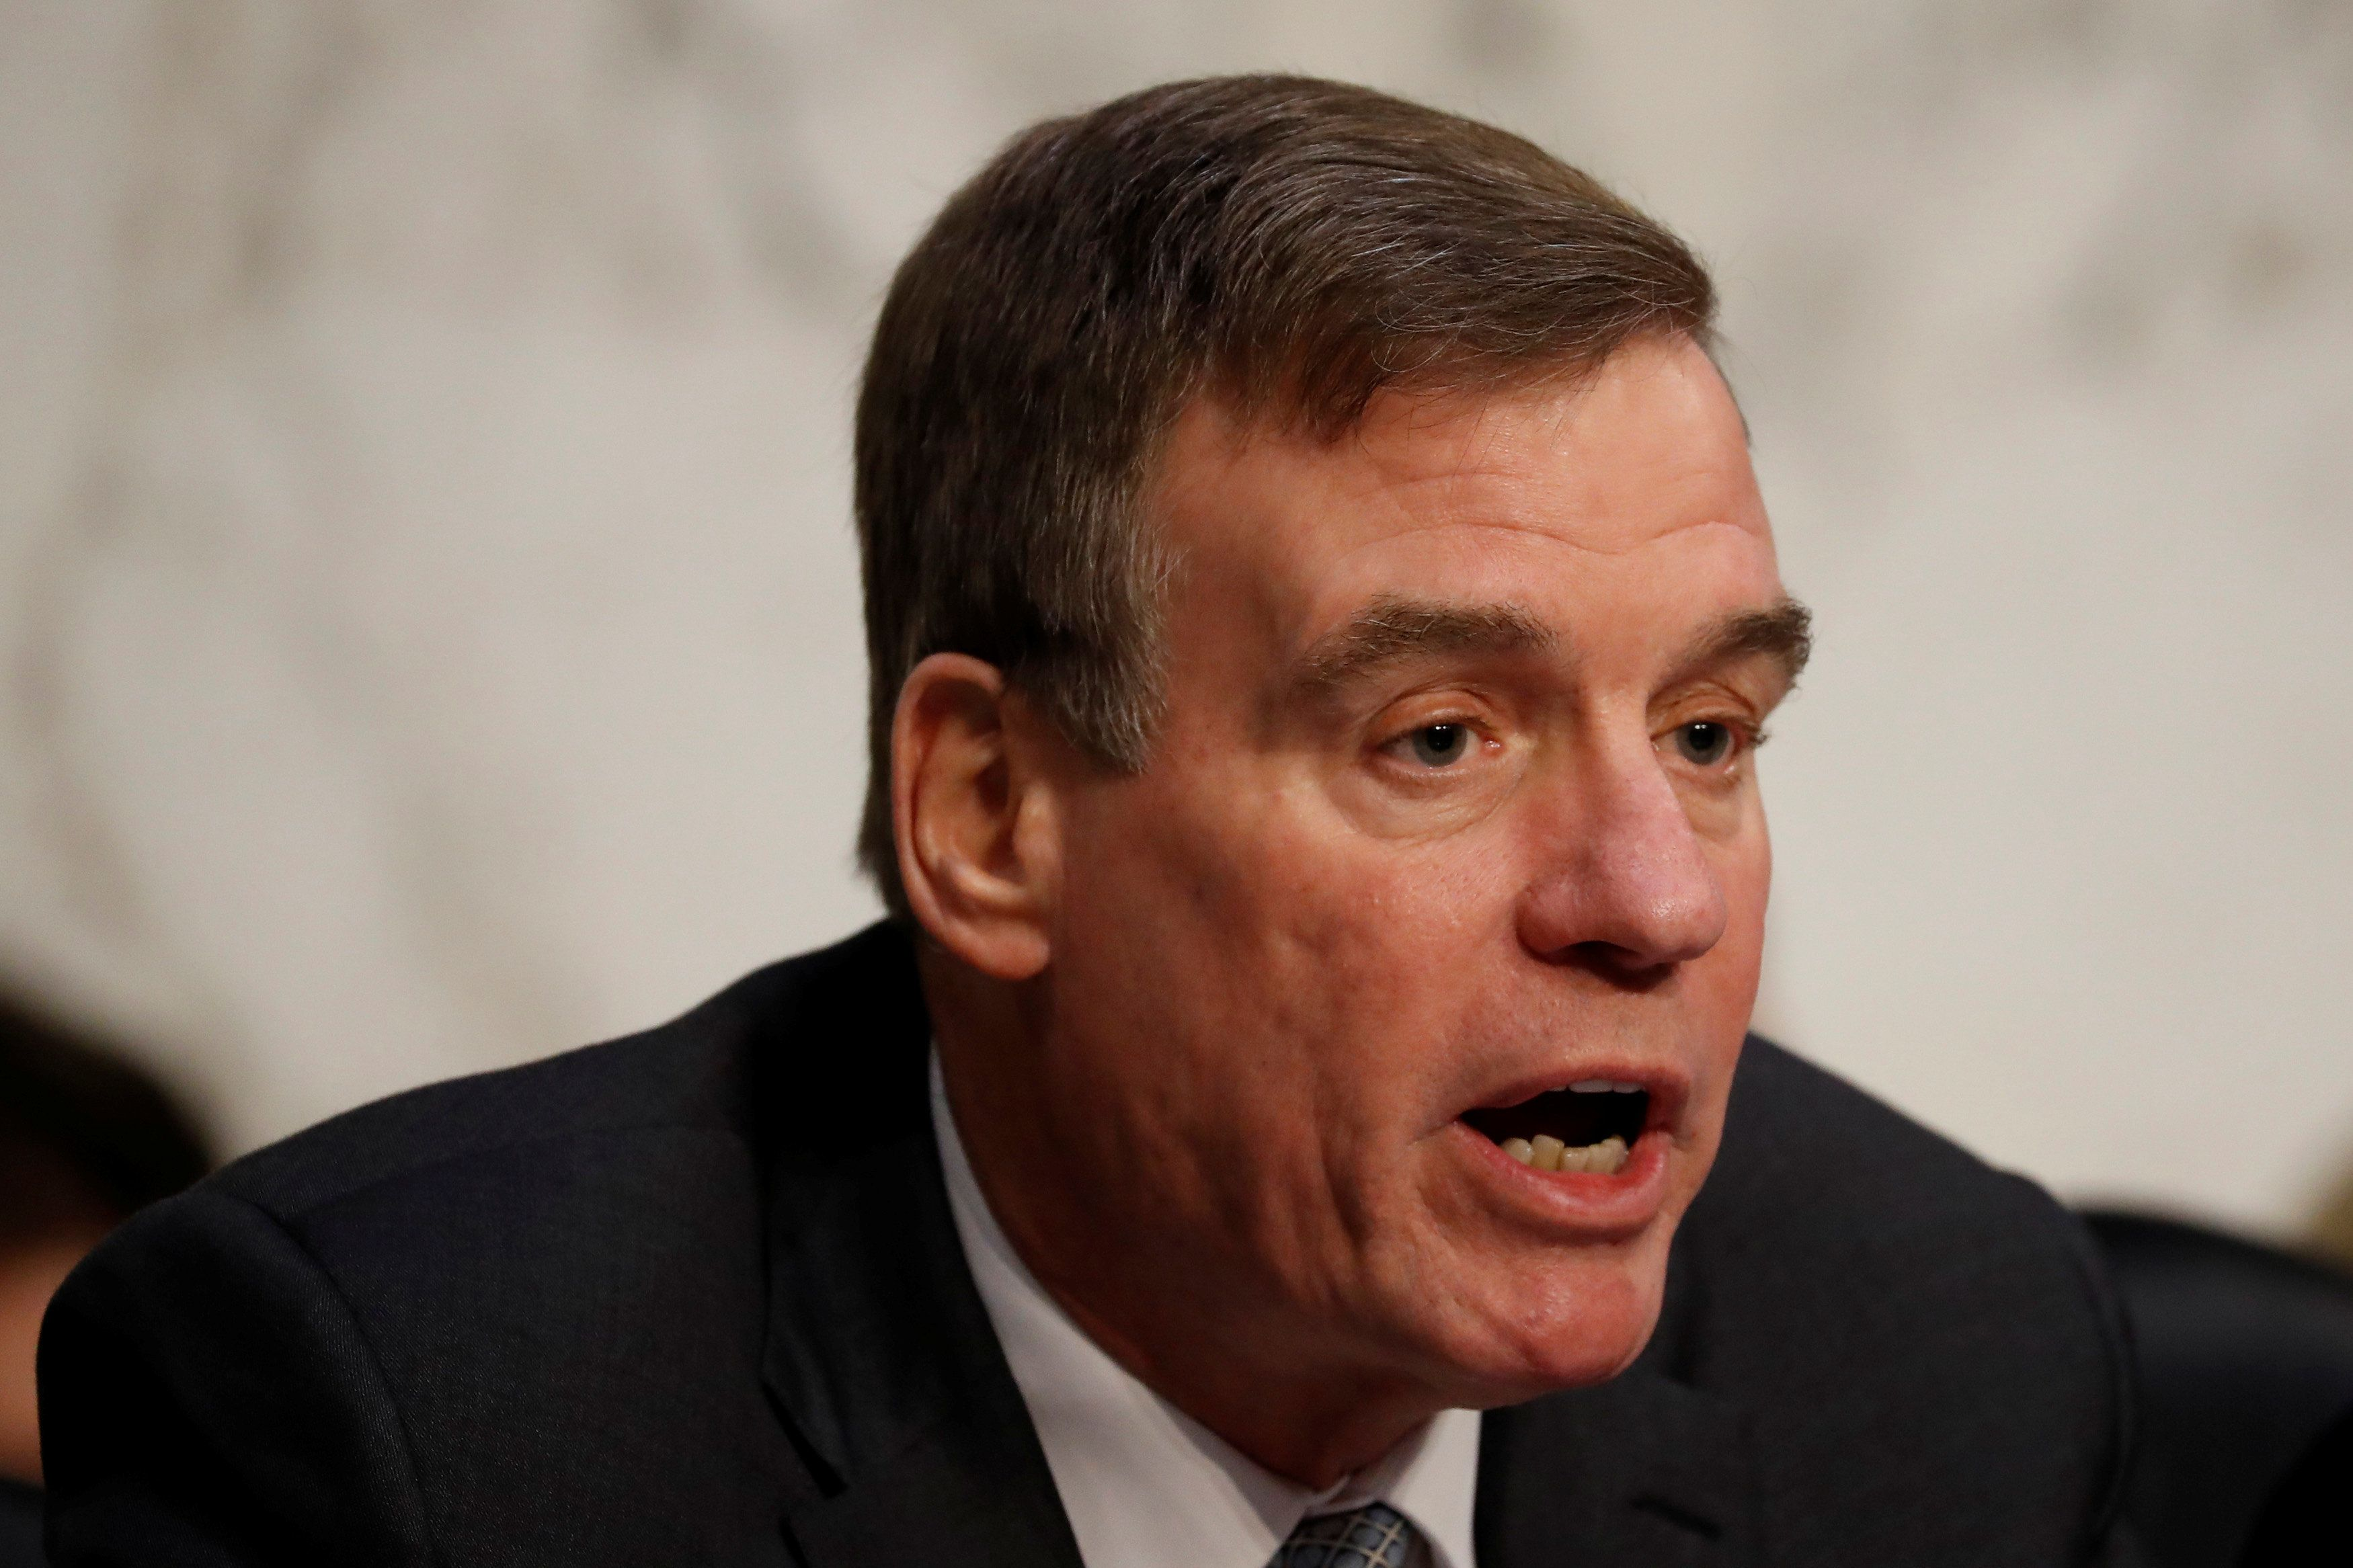 Mark Warner says Mark Zuckerberg needs to testify: 'He can't send staff'